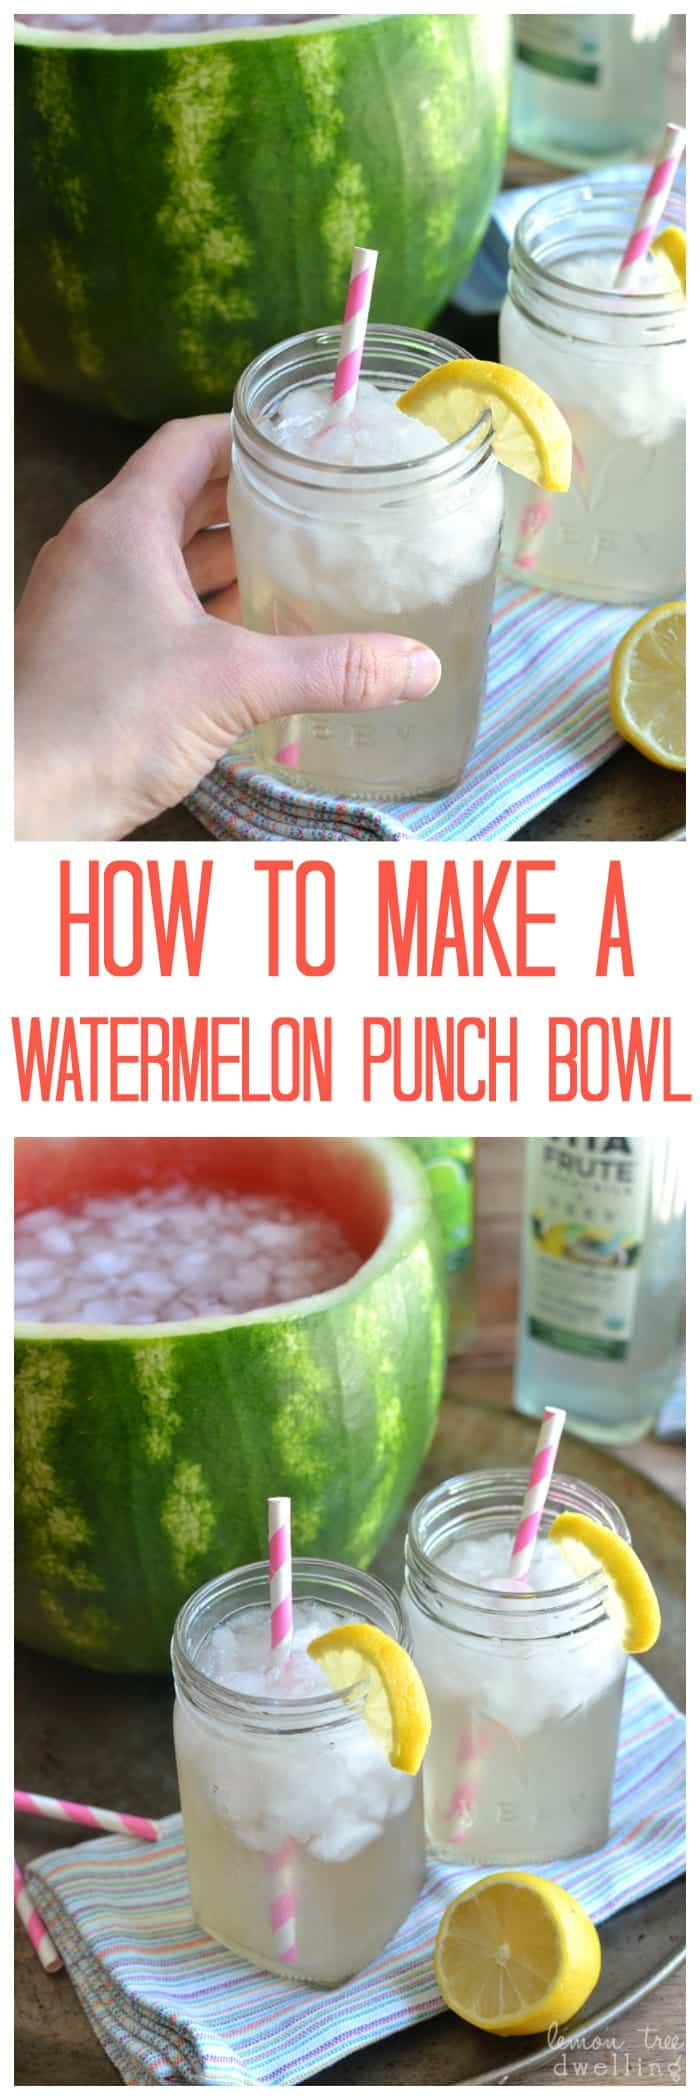 Watermelon Punch Bowl Tutorial & 10 Fun Ways to Bring Neighbors Together This Summer! #vitafrute #ad #bh